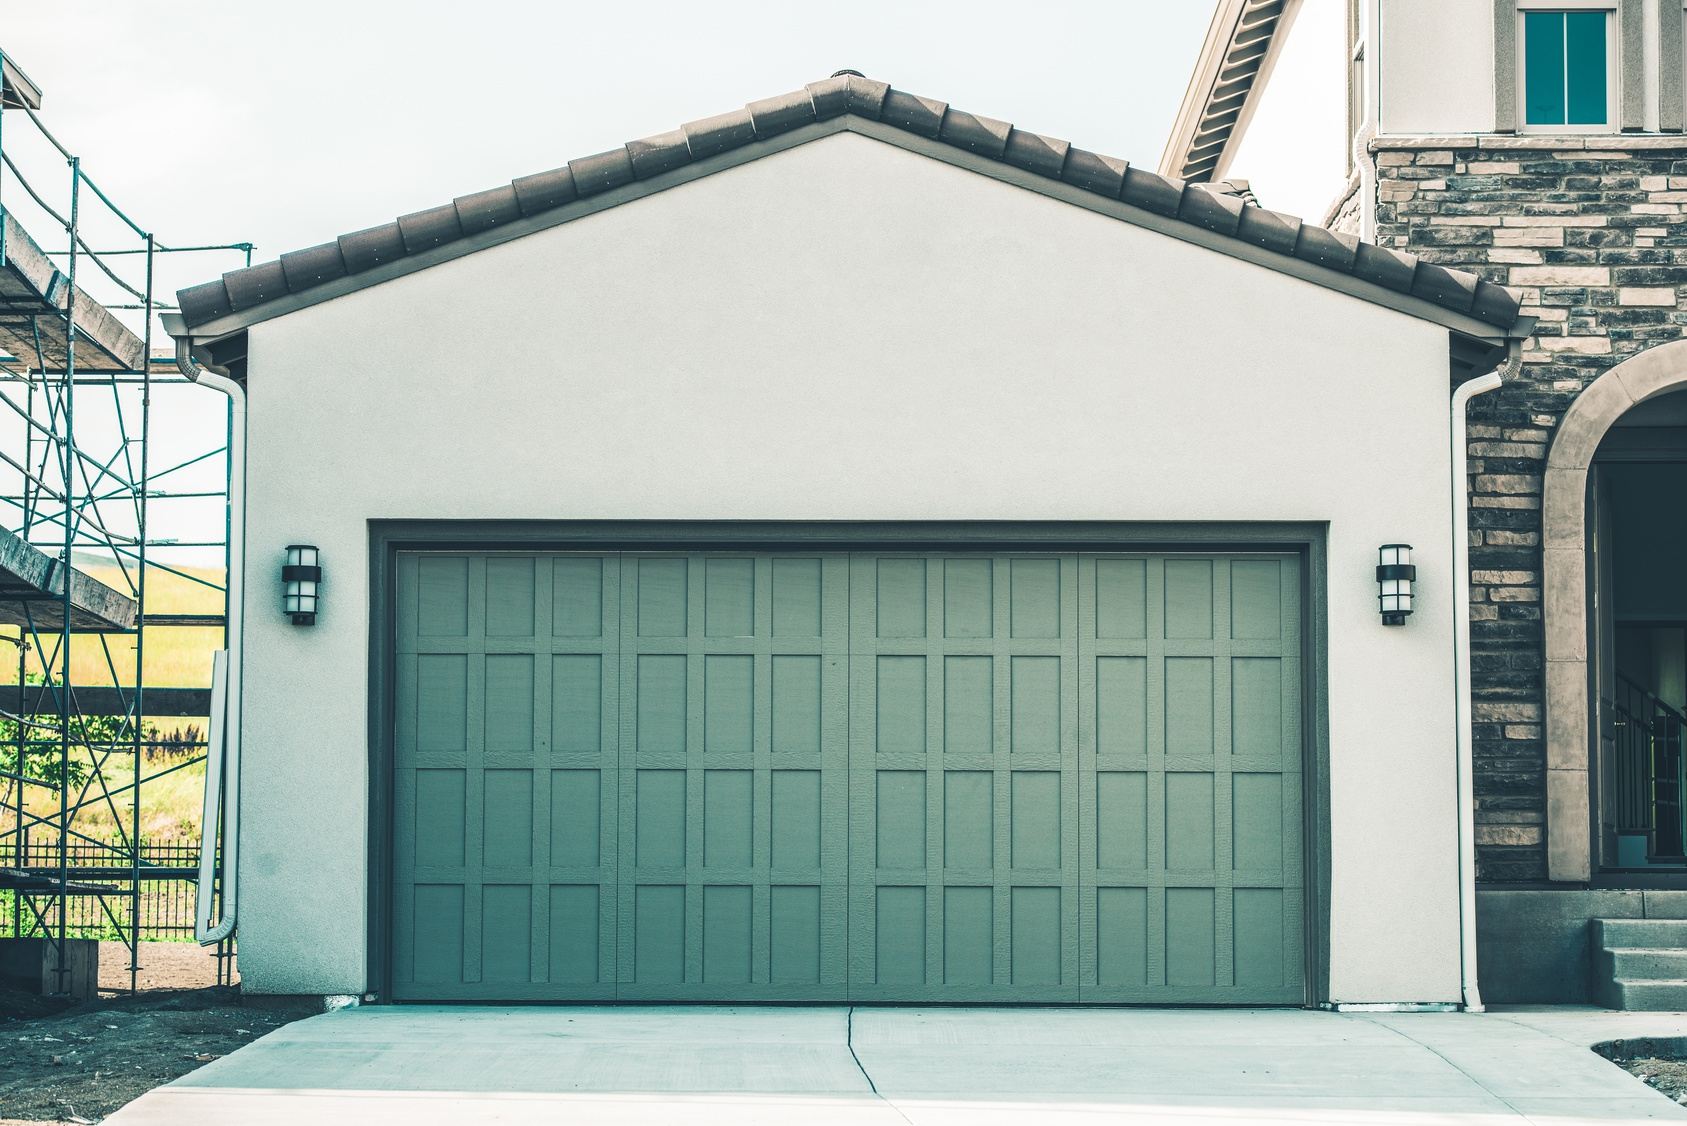 Overhead Door overhead door of washington dc photos : Garage Door Repair Washington DC - Gate Openers Service | 5* Rated